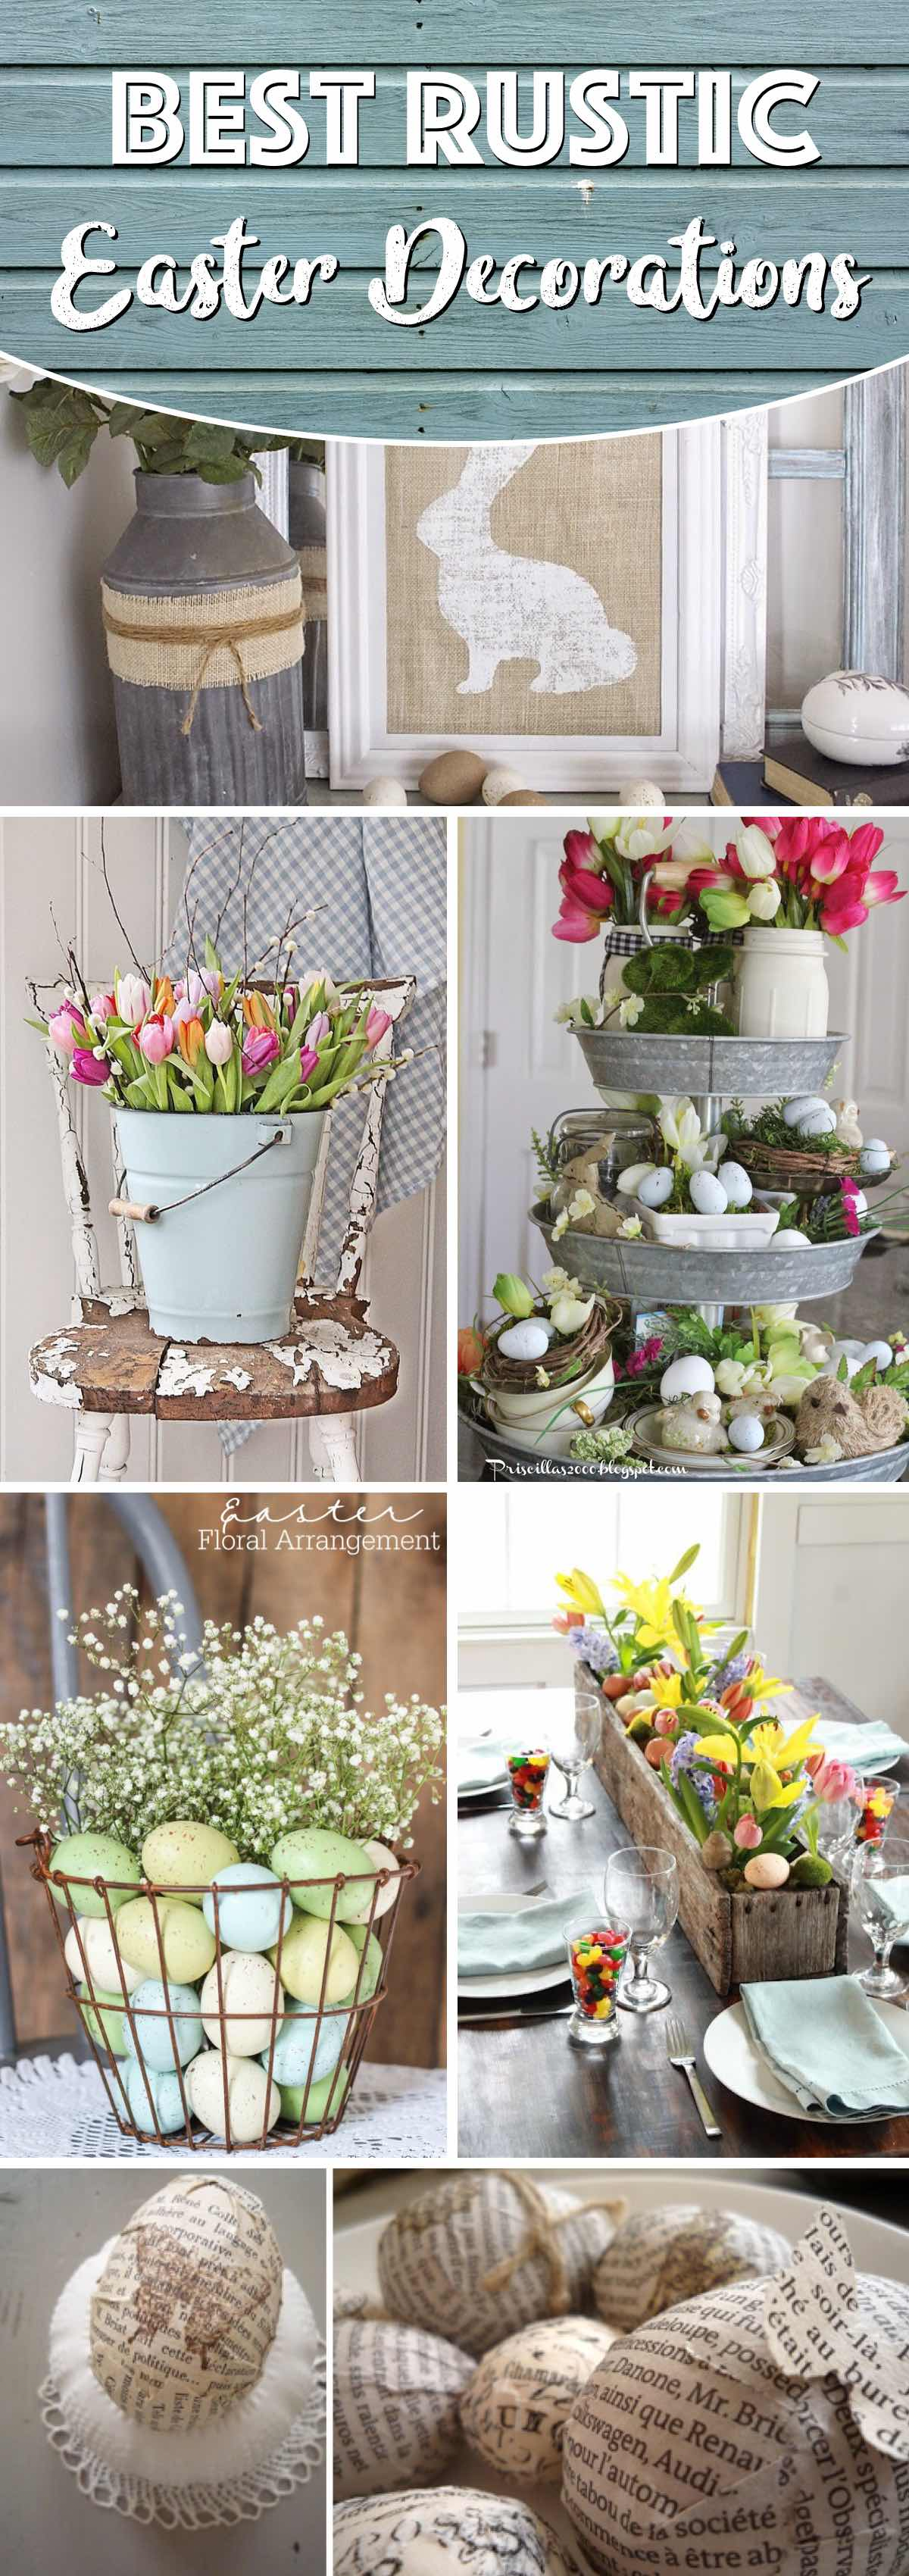 20 Rustic Easter Decorations Bringing a Farmhouse Appeal ...